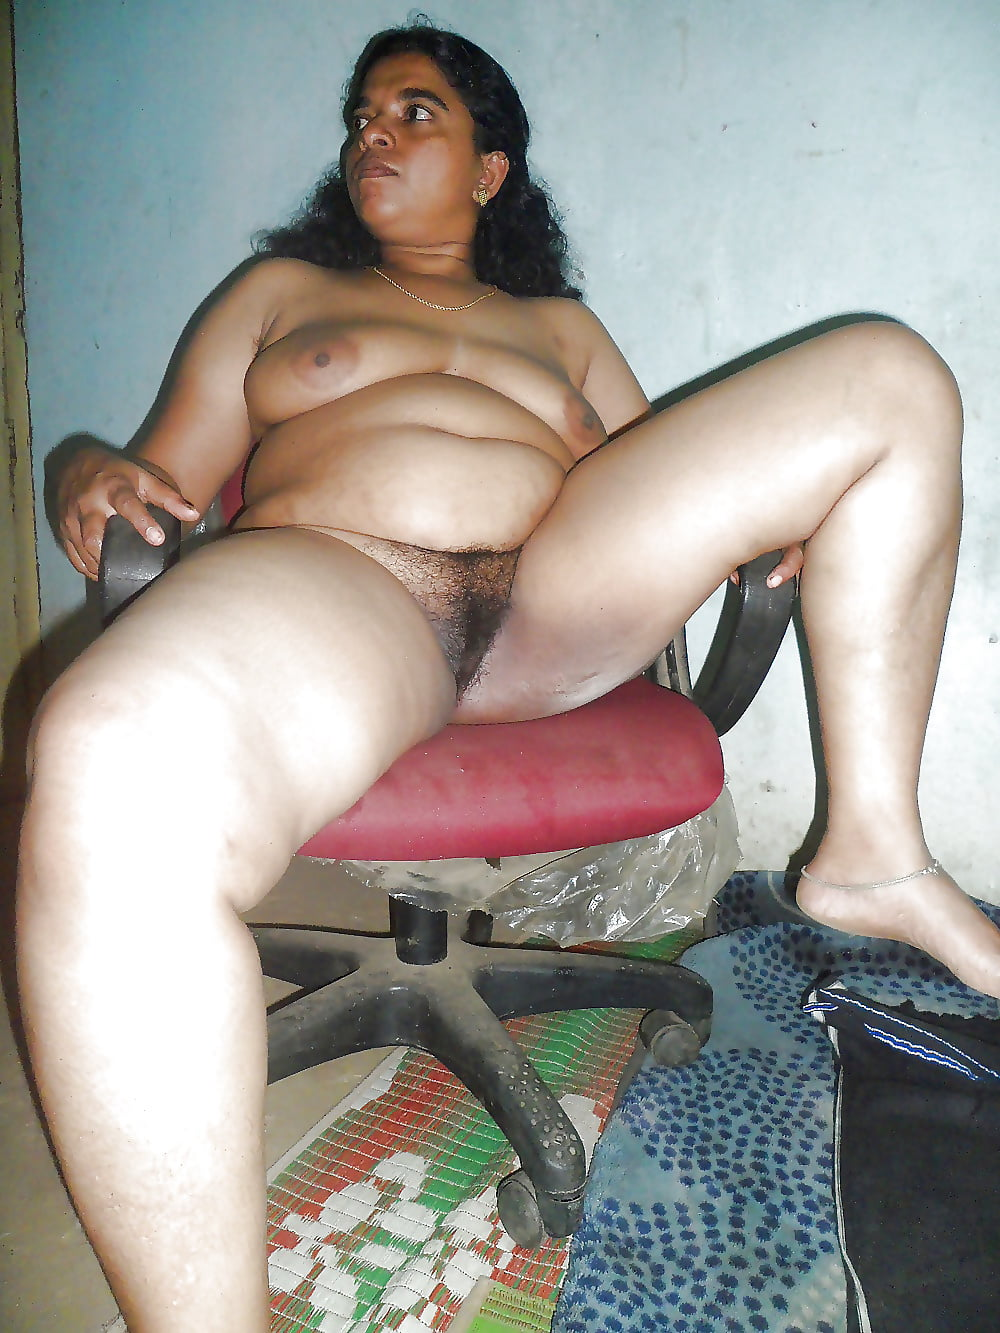 indian-immature-porn-moment-of-orgasm-woman